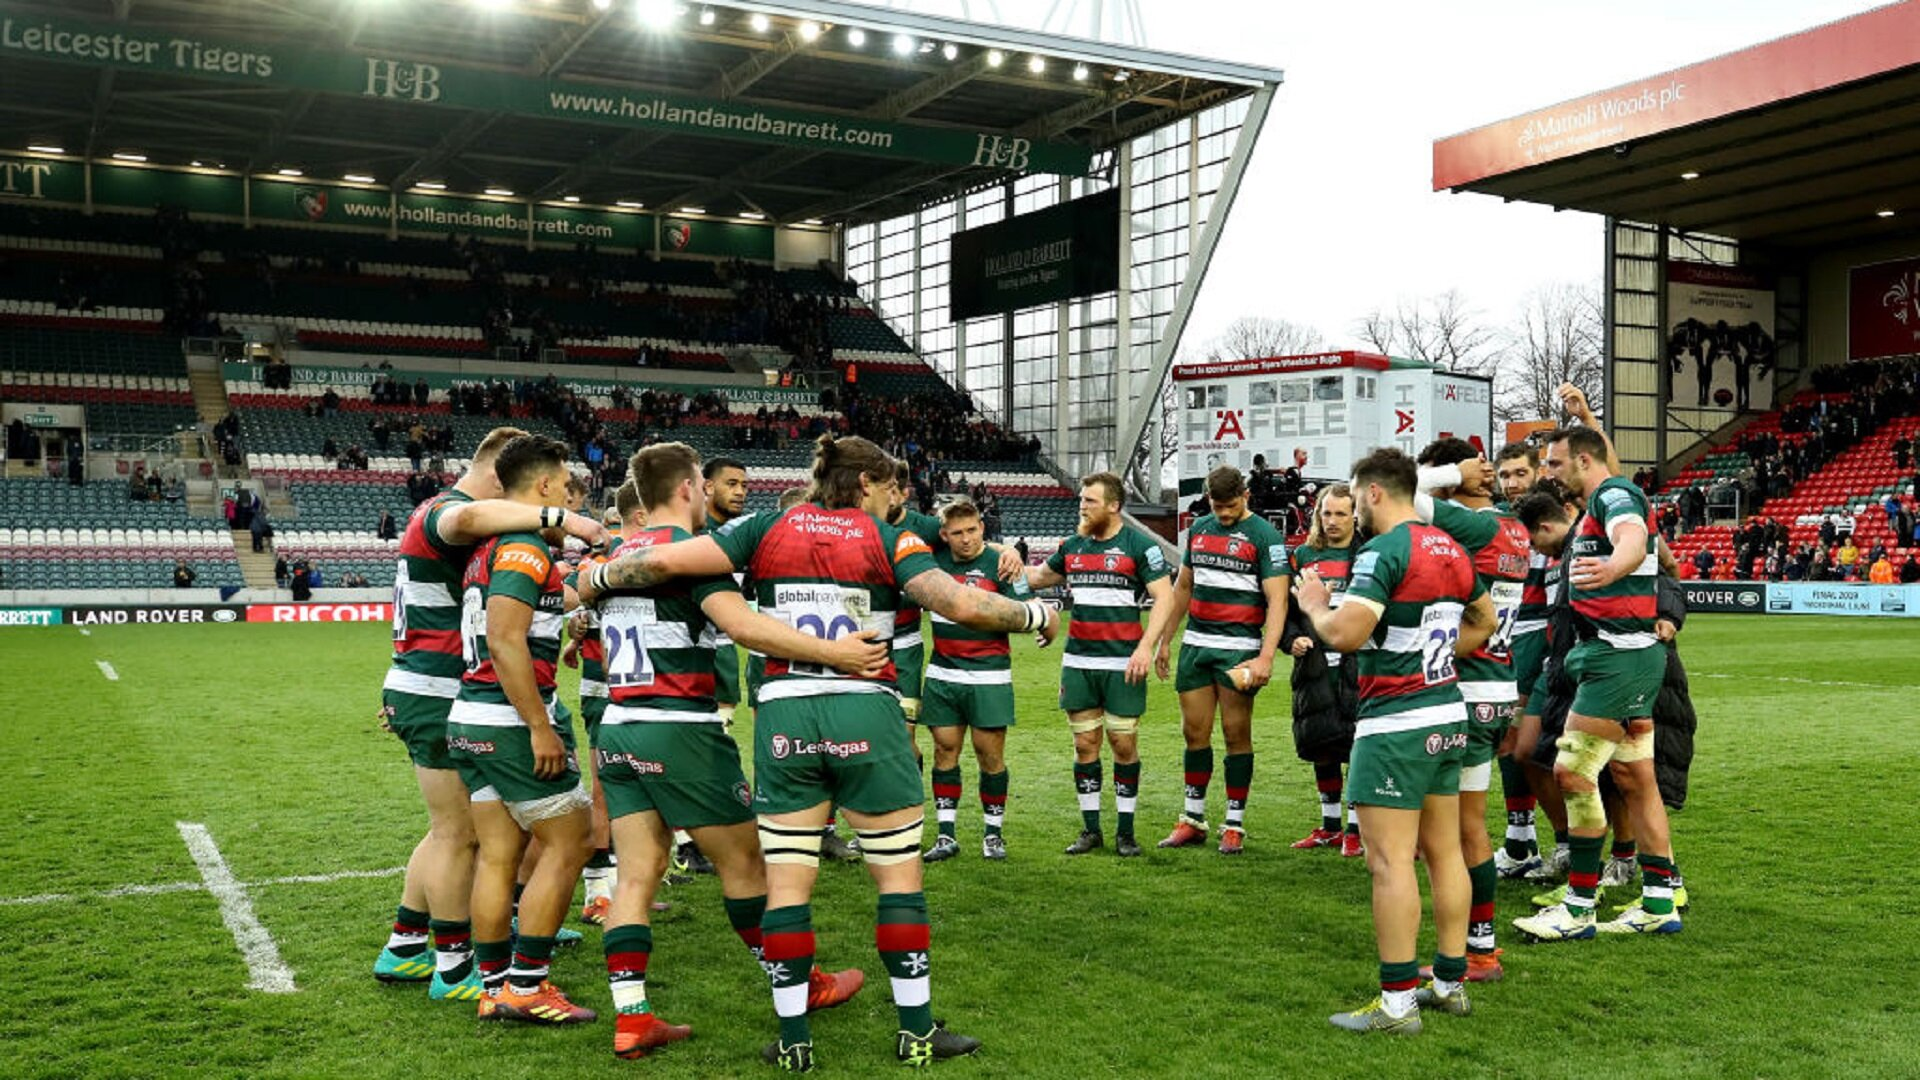 Is Leicester Tigers supremo still the best gig in English rugby? You bet it is